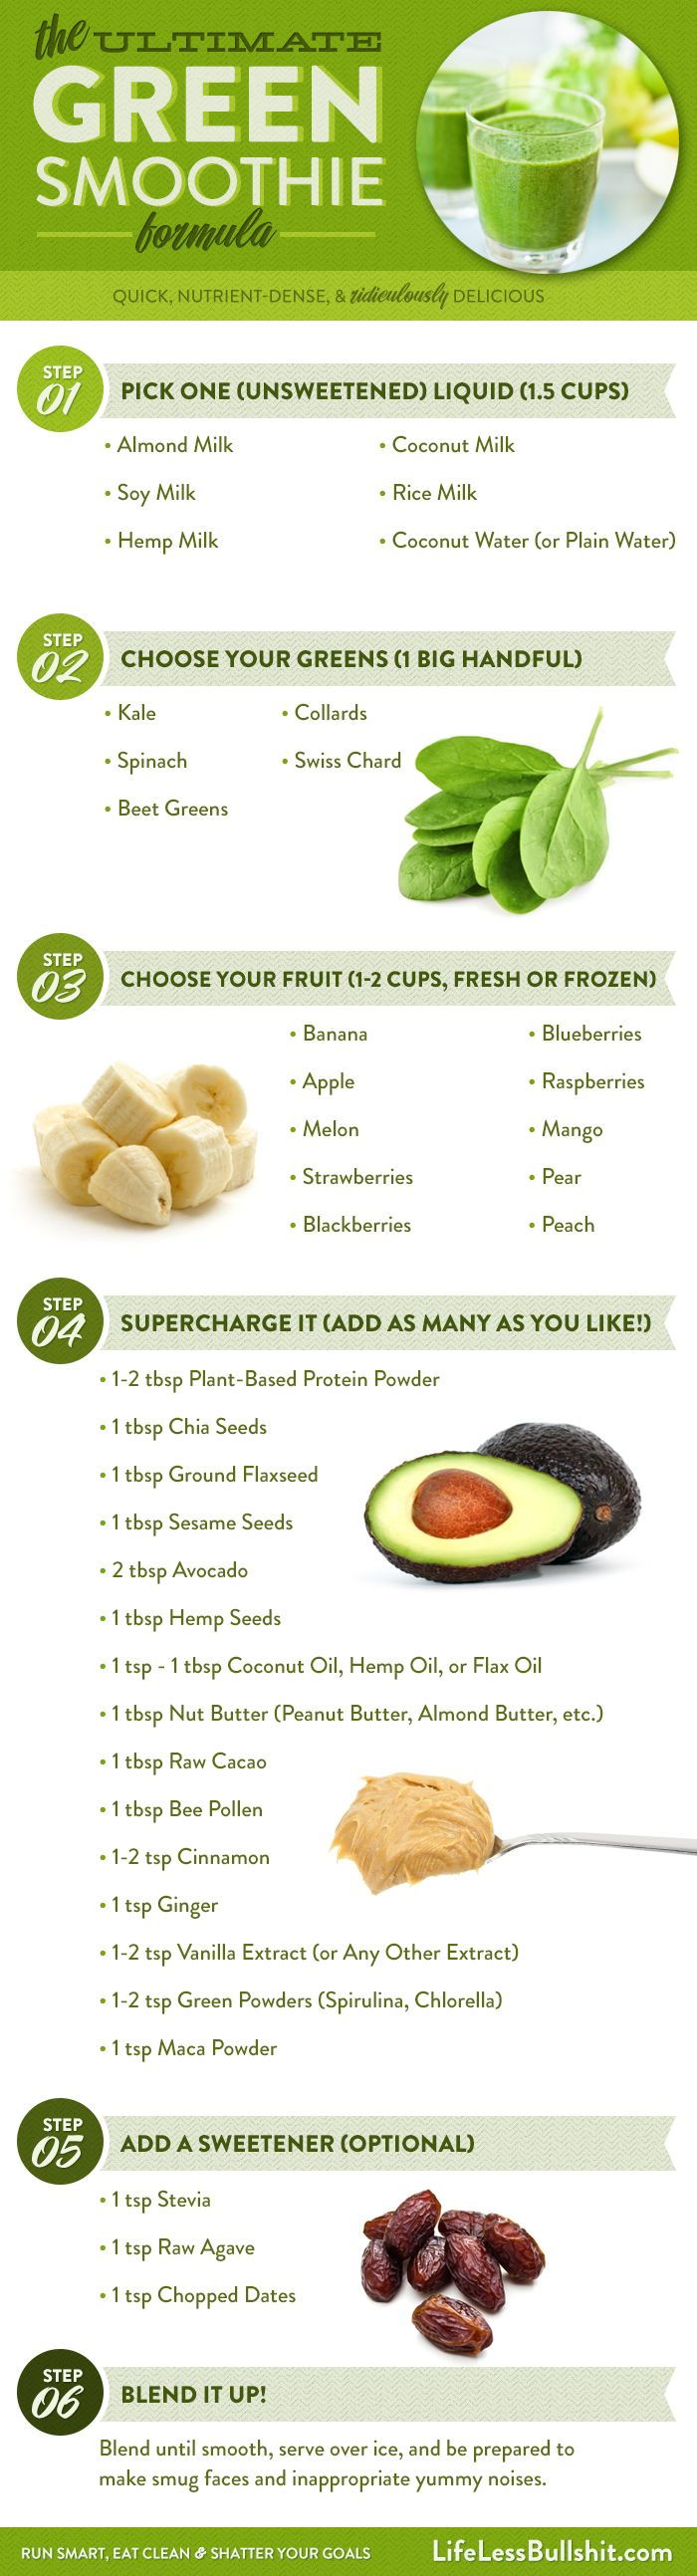 The ultimate green smoothie formula - how to mix your smoothies #health